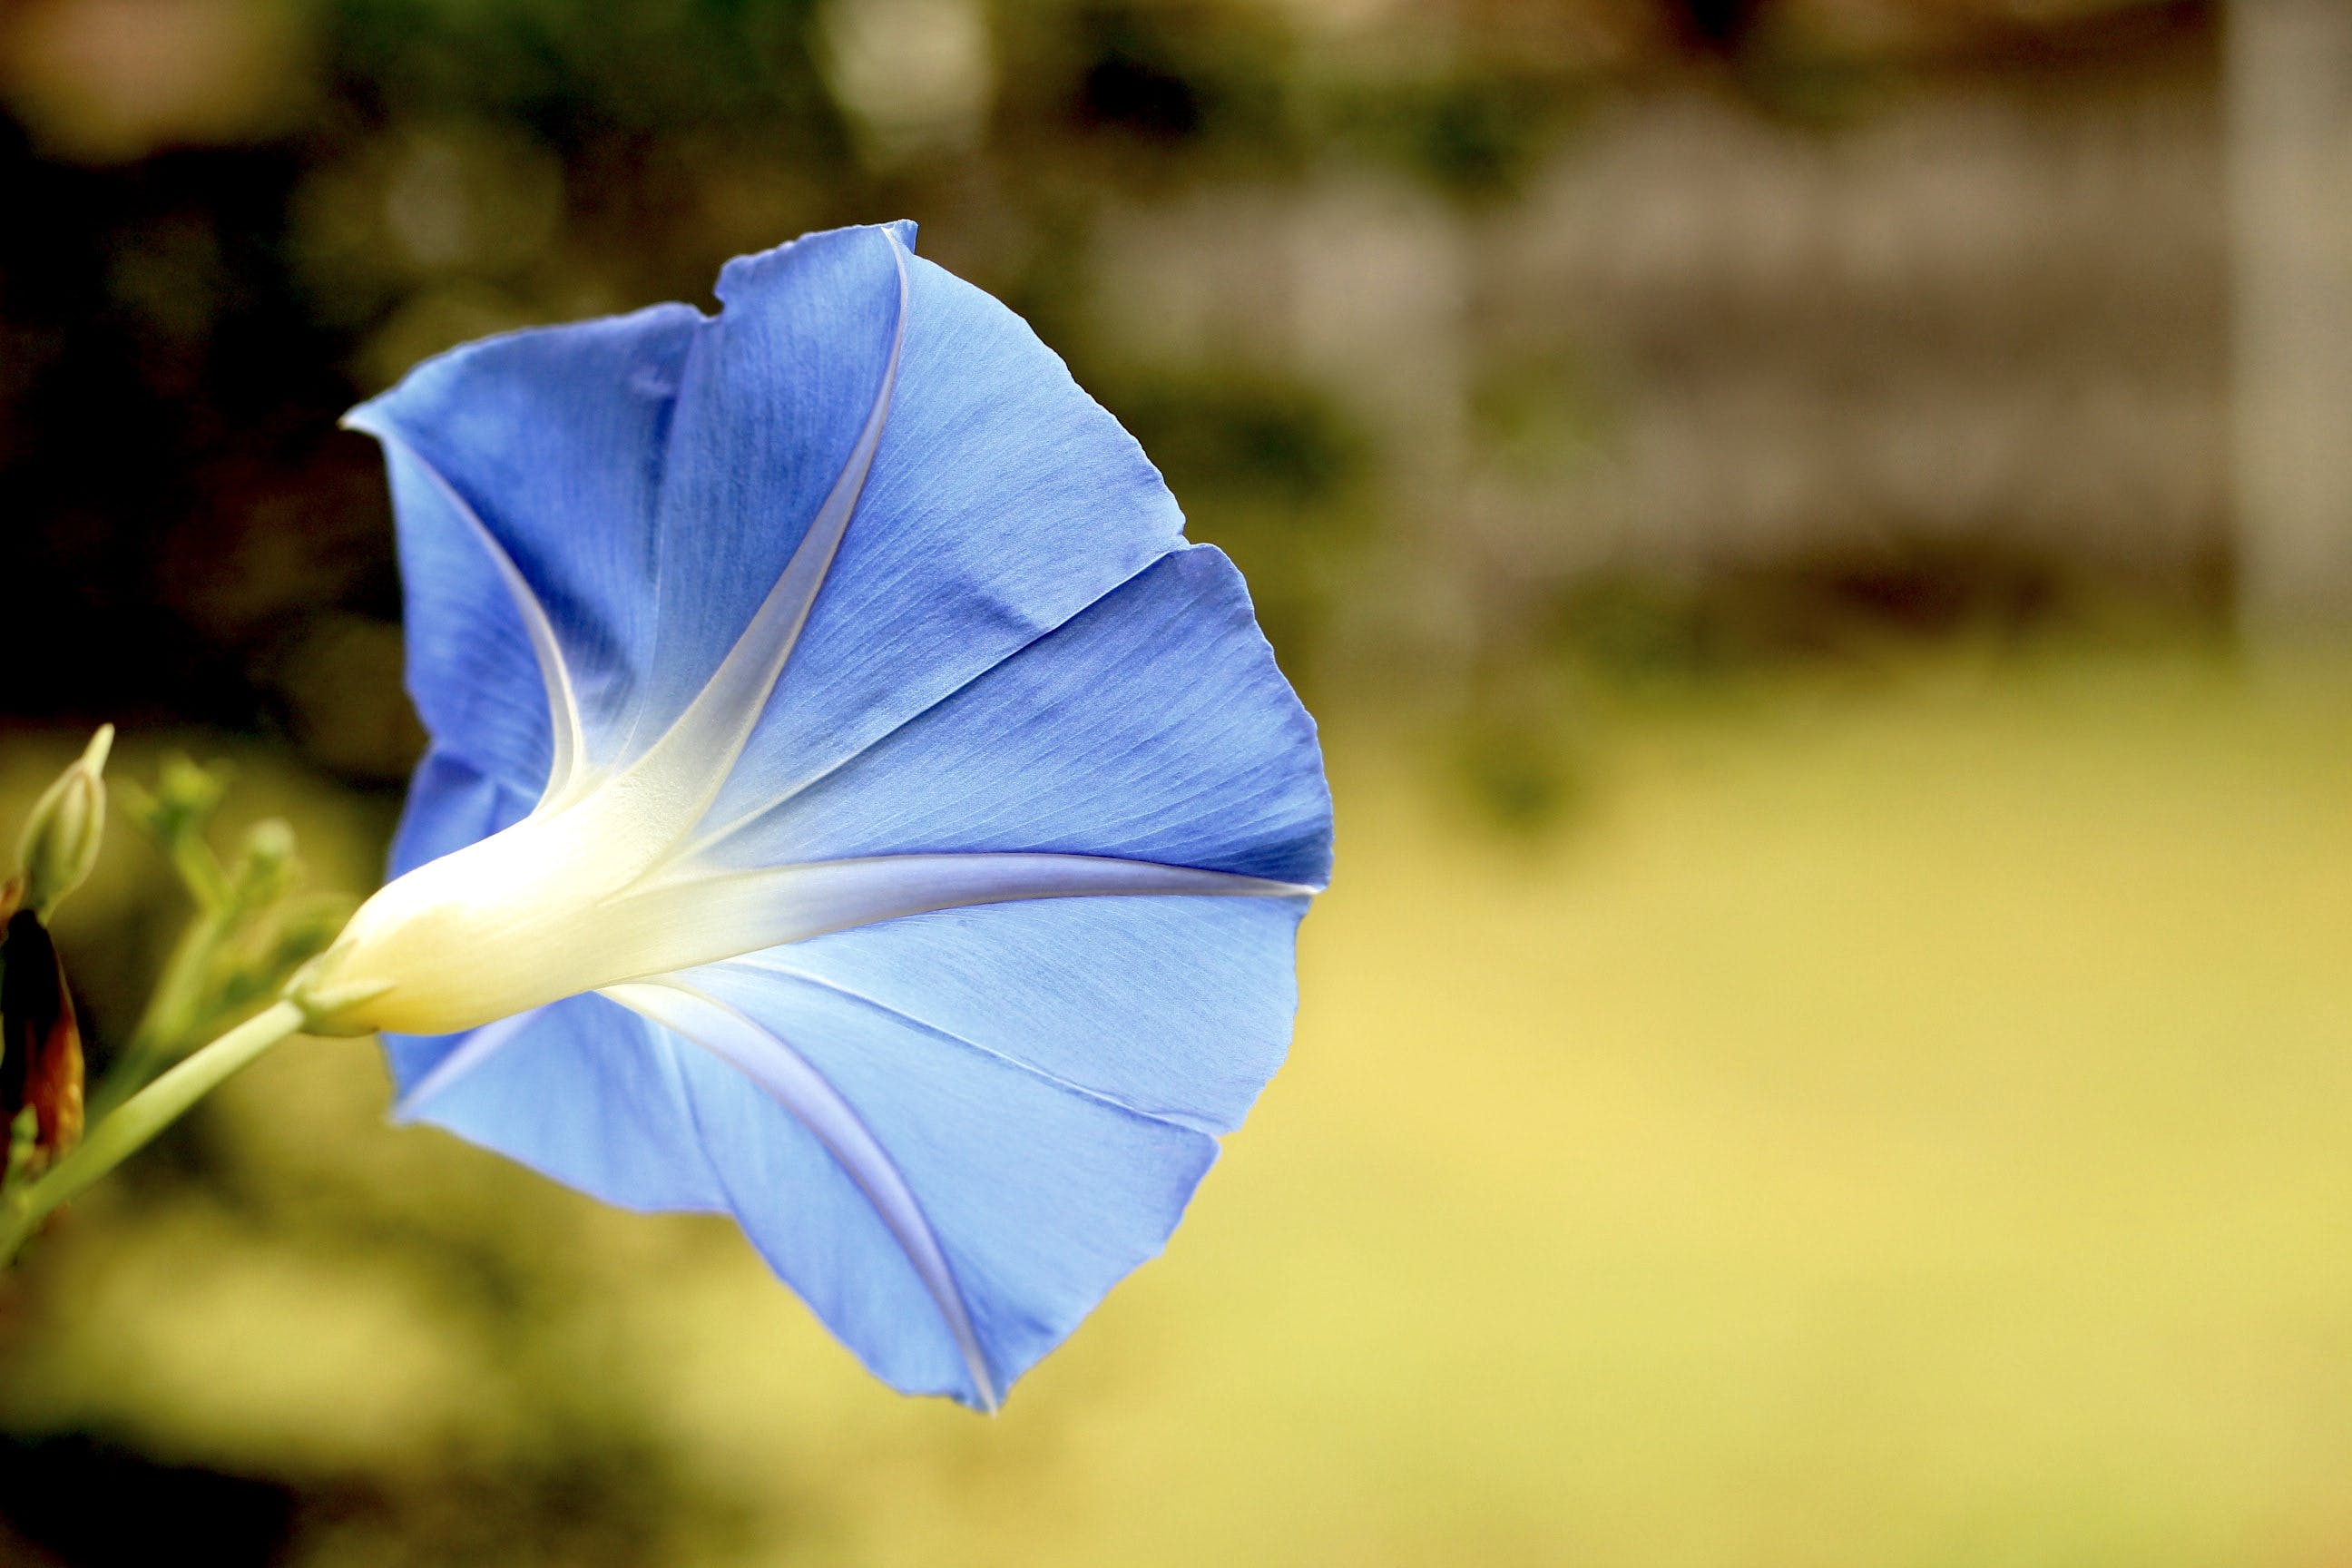 Blue Morning Glory Flower Blooming